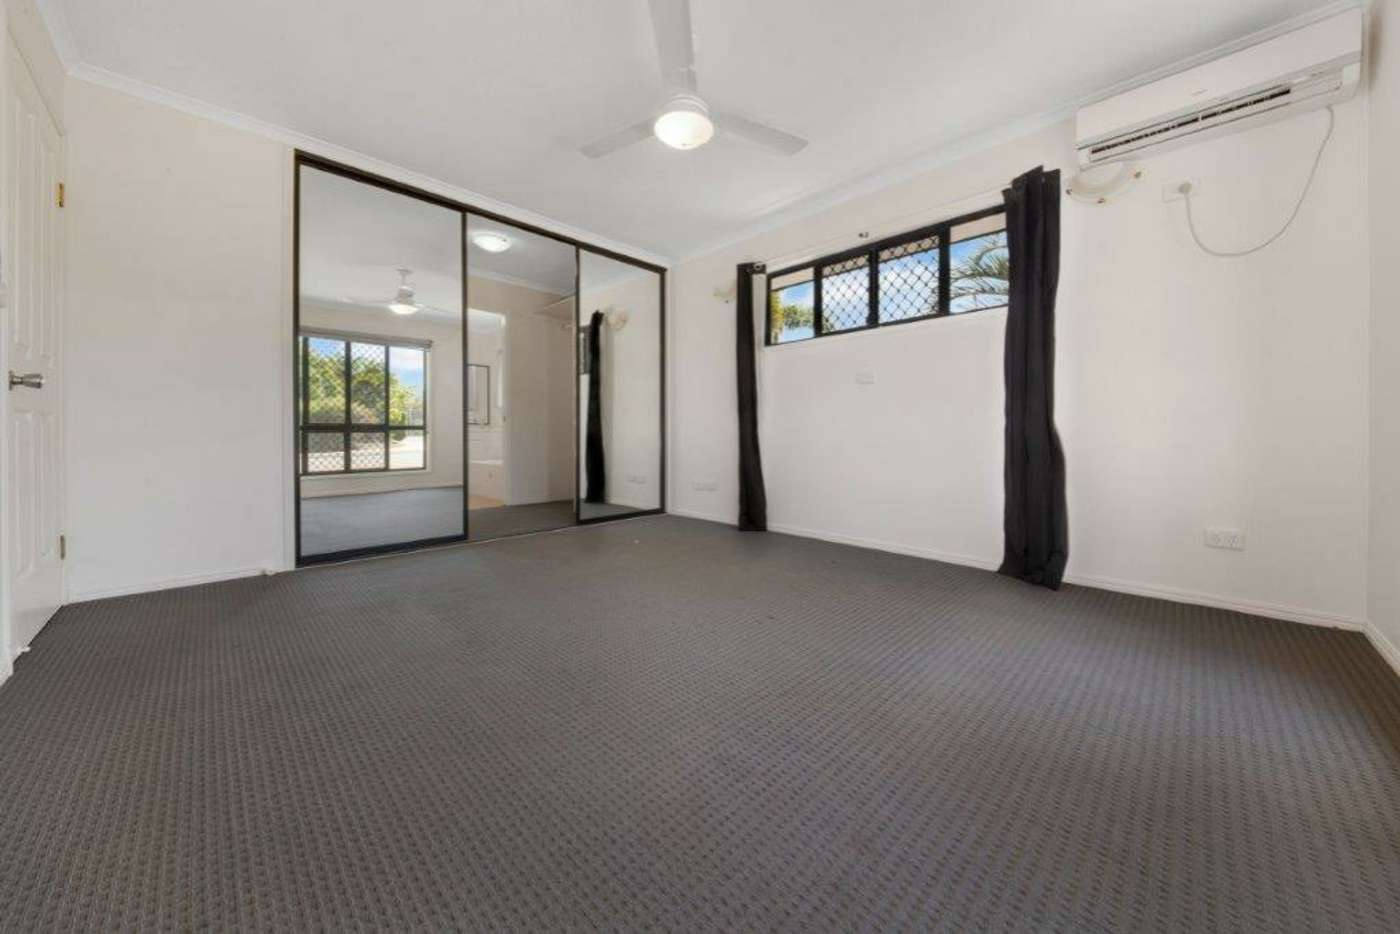 Seventh view of Homely house listing, 66 Witney Street, Telina QLD 4680